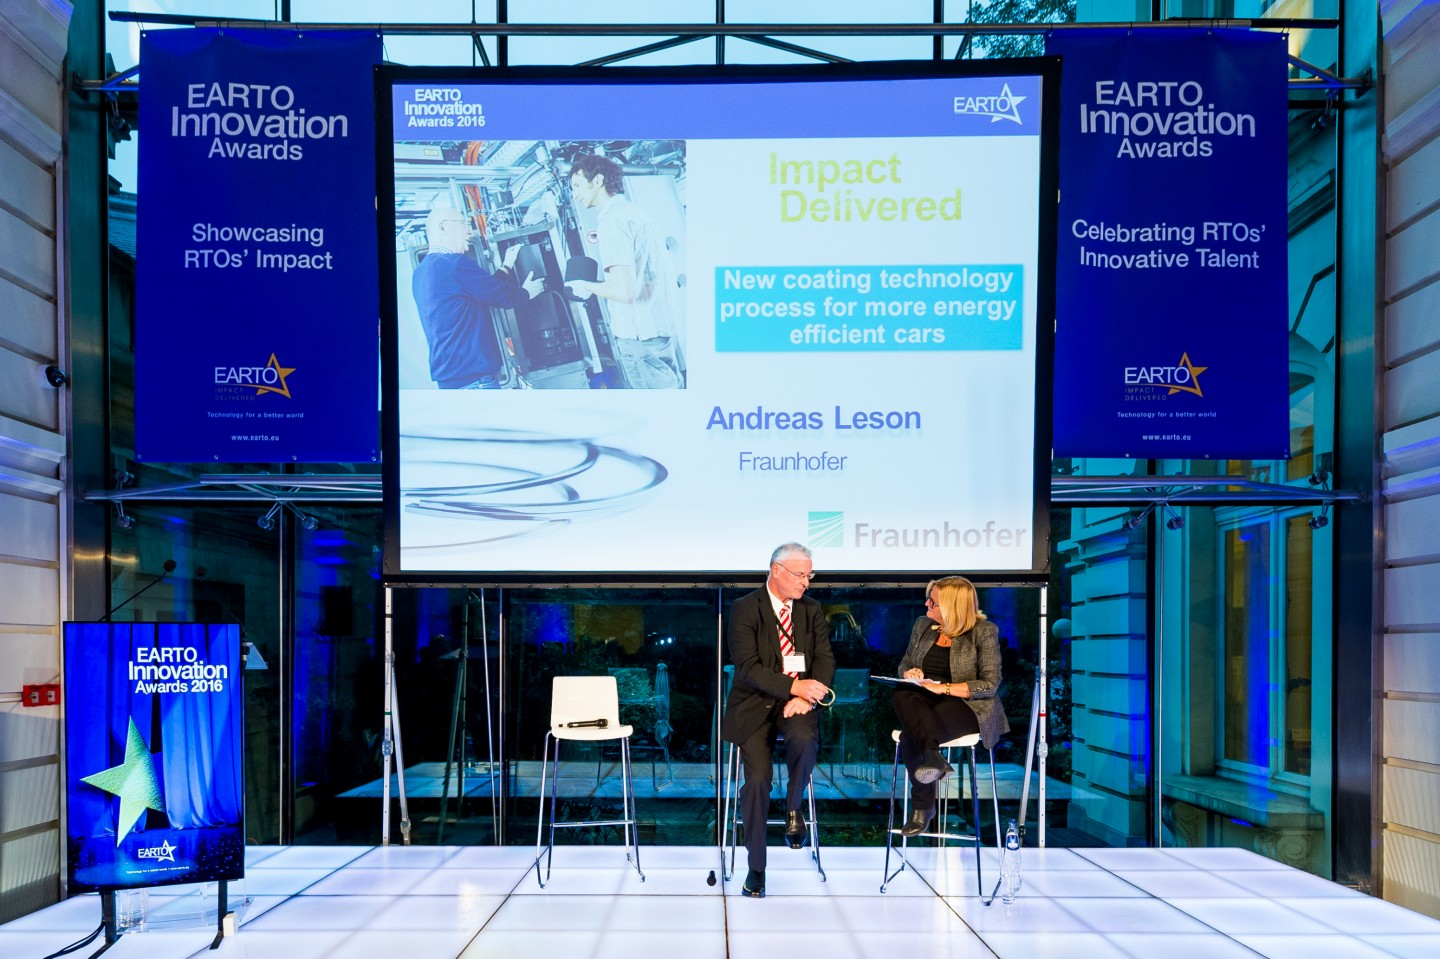 EARTO Innovation Awards Verleihung am 12. Oktober 2016 in Brüssel